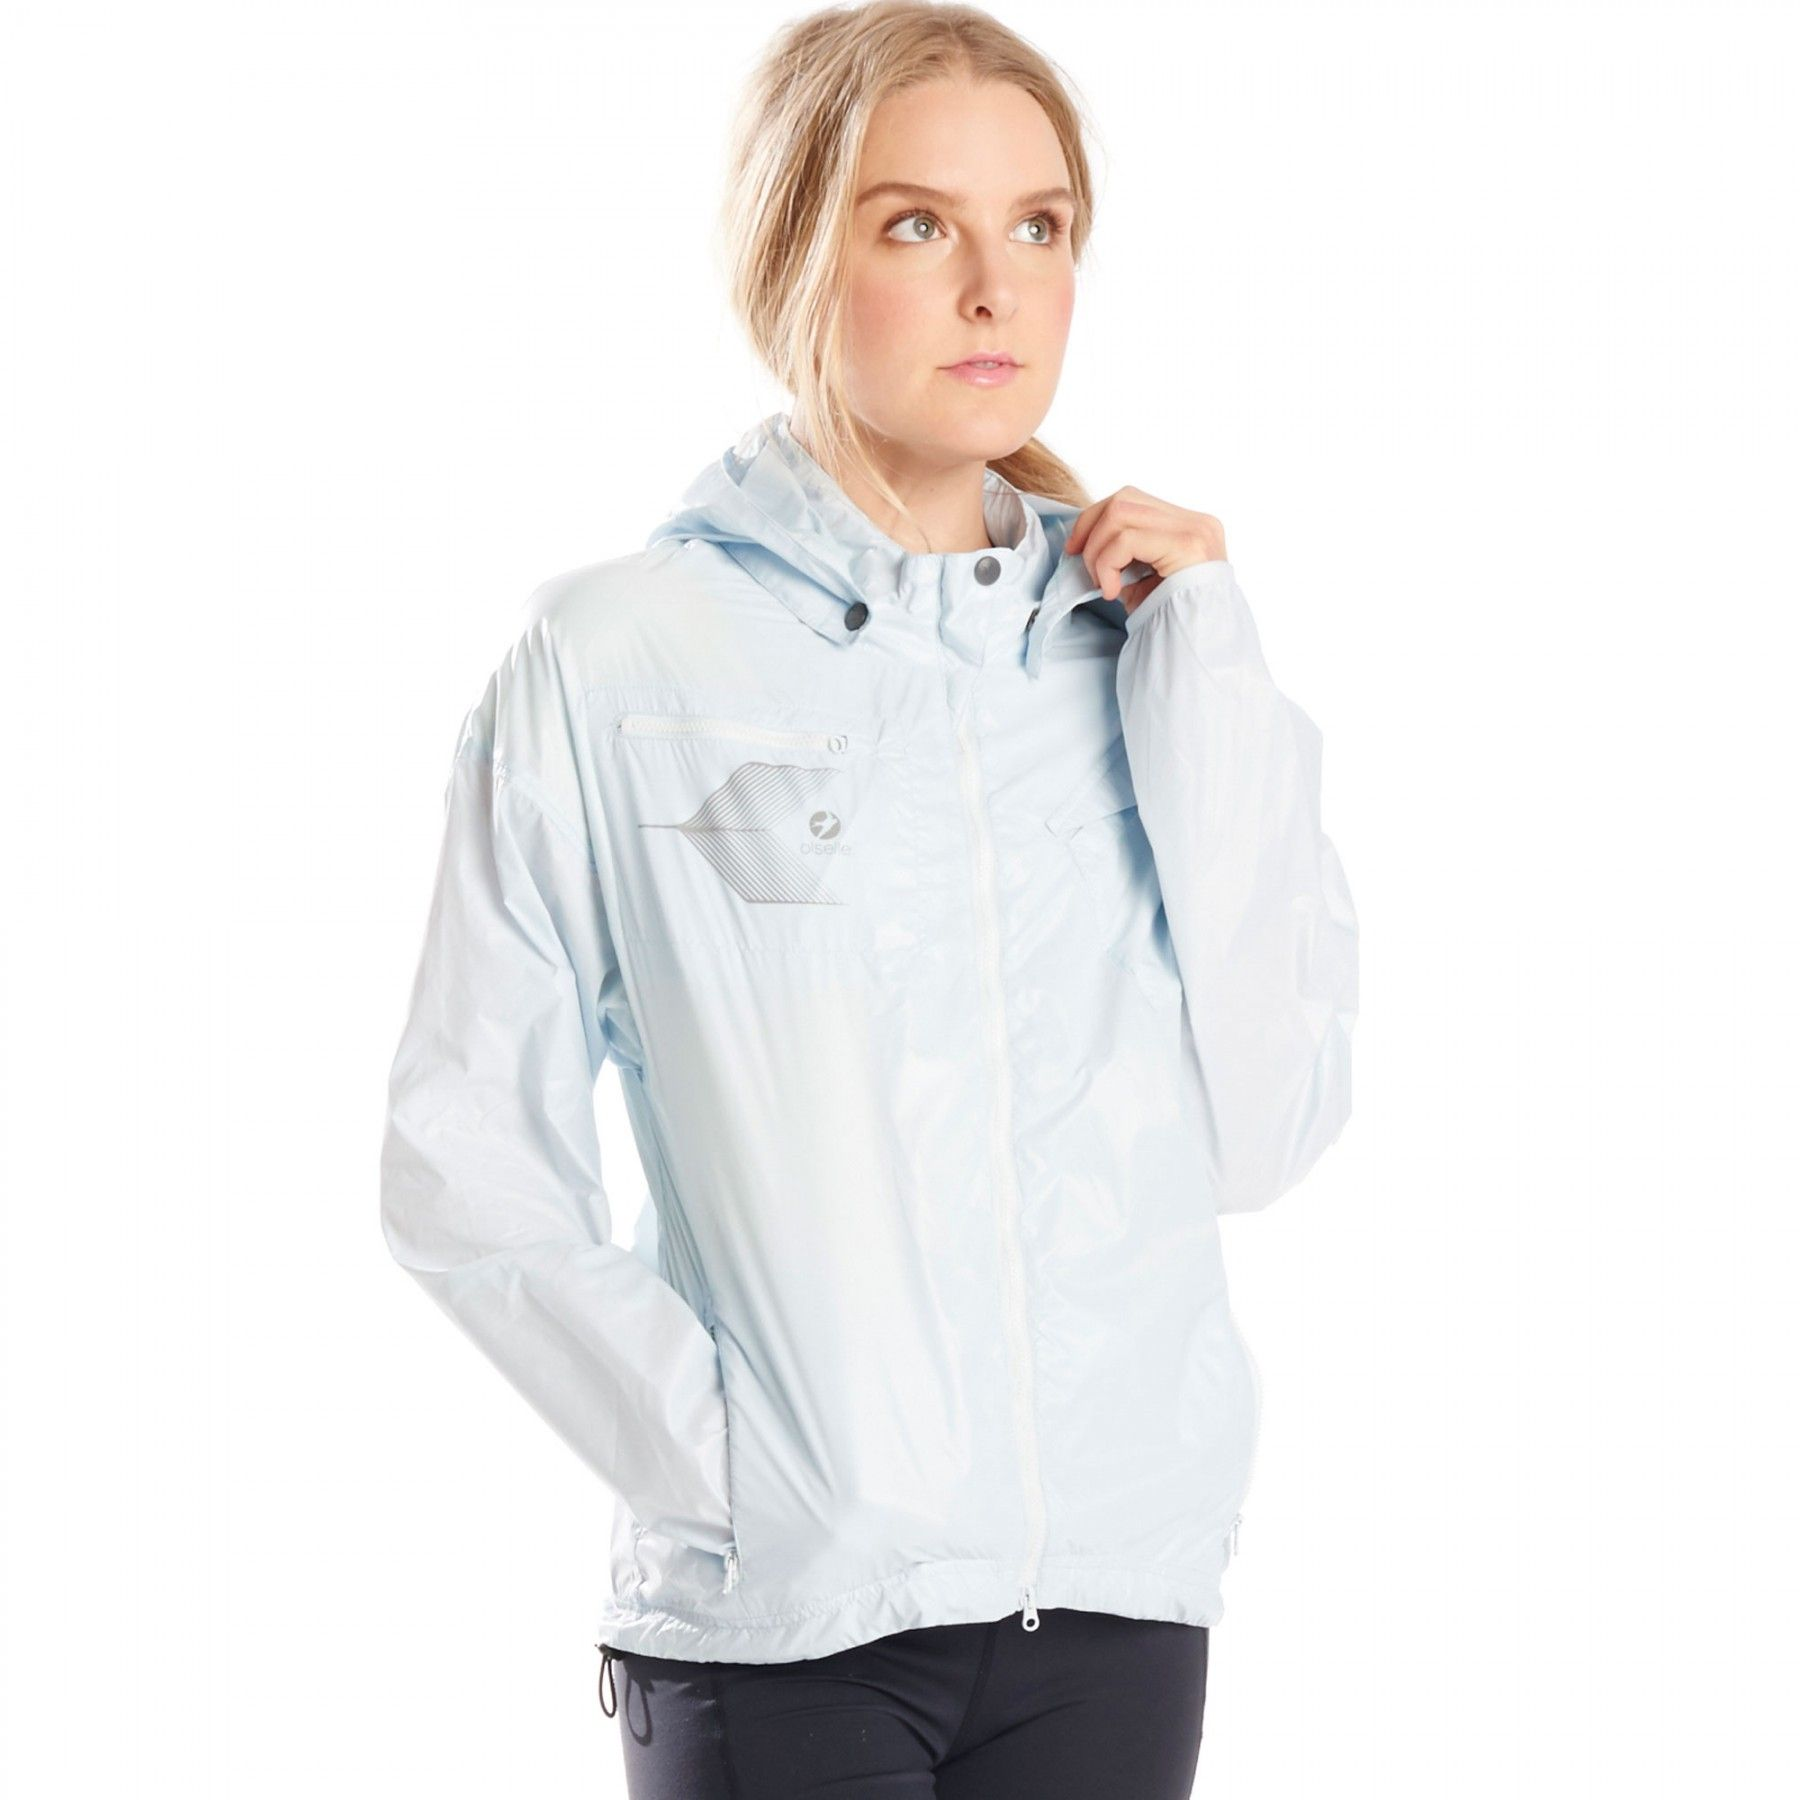 The Wallace Jacket is your winter drizzle protection piece. Lots of pockets, a removable hood, and wind and water resistant. Plus, packs into its own pocket when the clouds break and you can shed a layer!